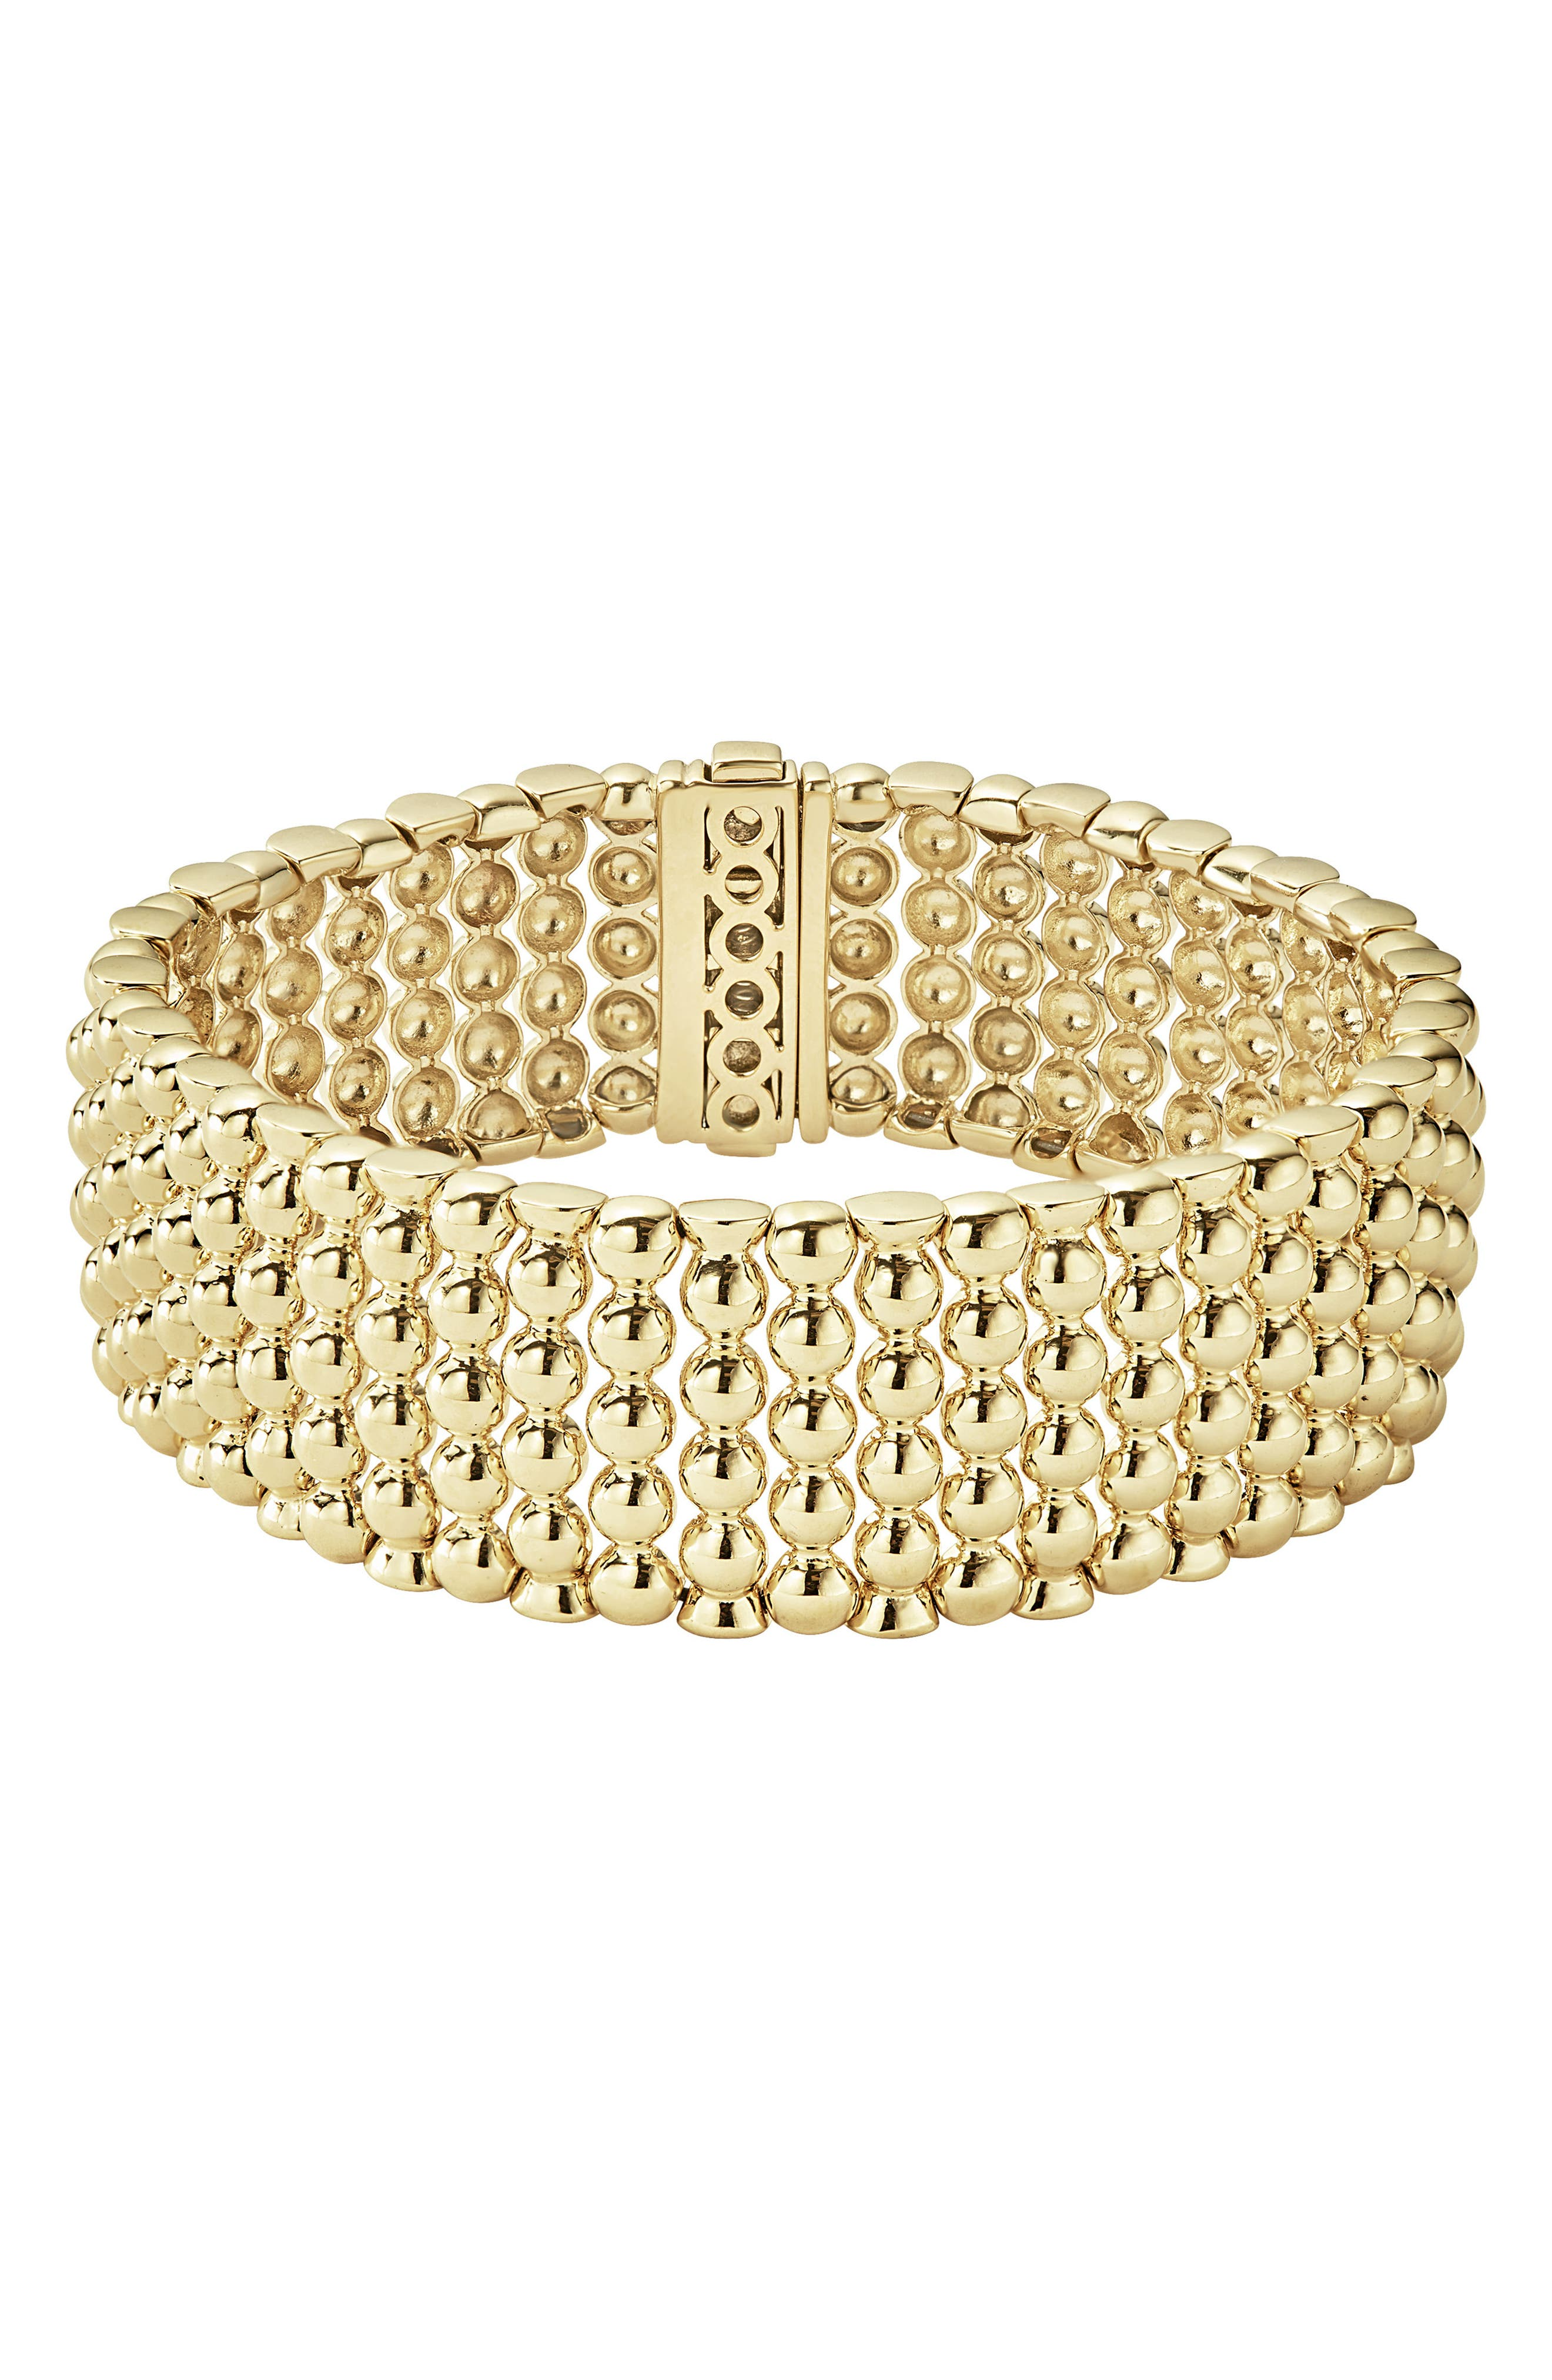 Caviar Gold Bold Wide Rope Bracelet,                             Main thumbnail 1, color,                             Gold